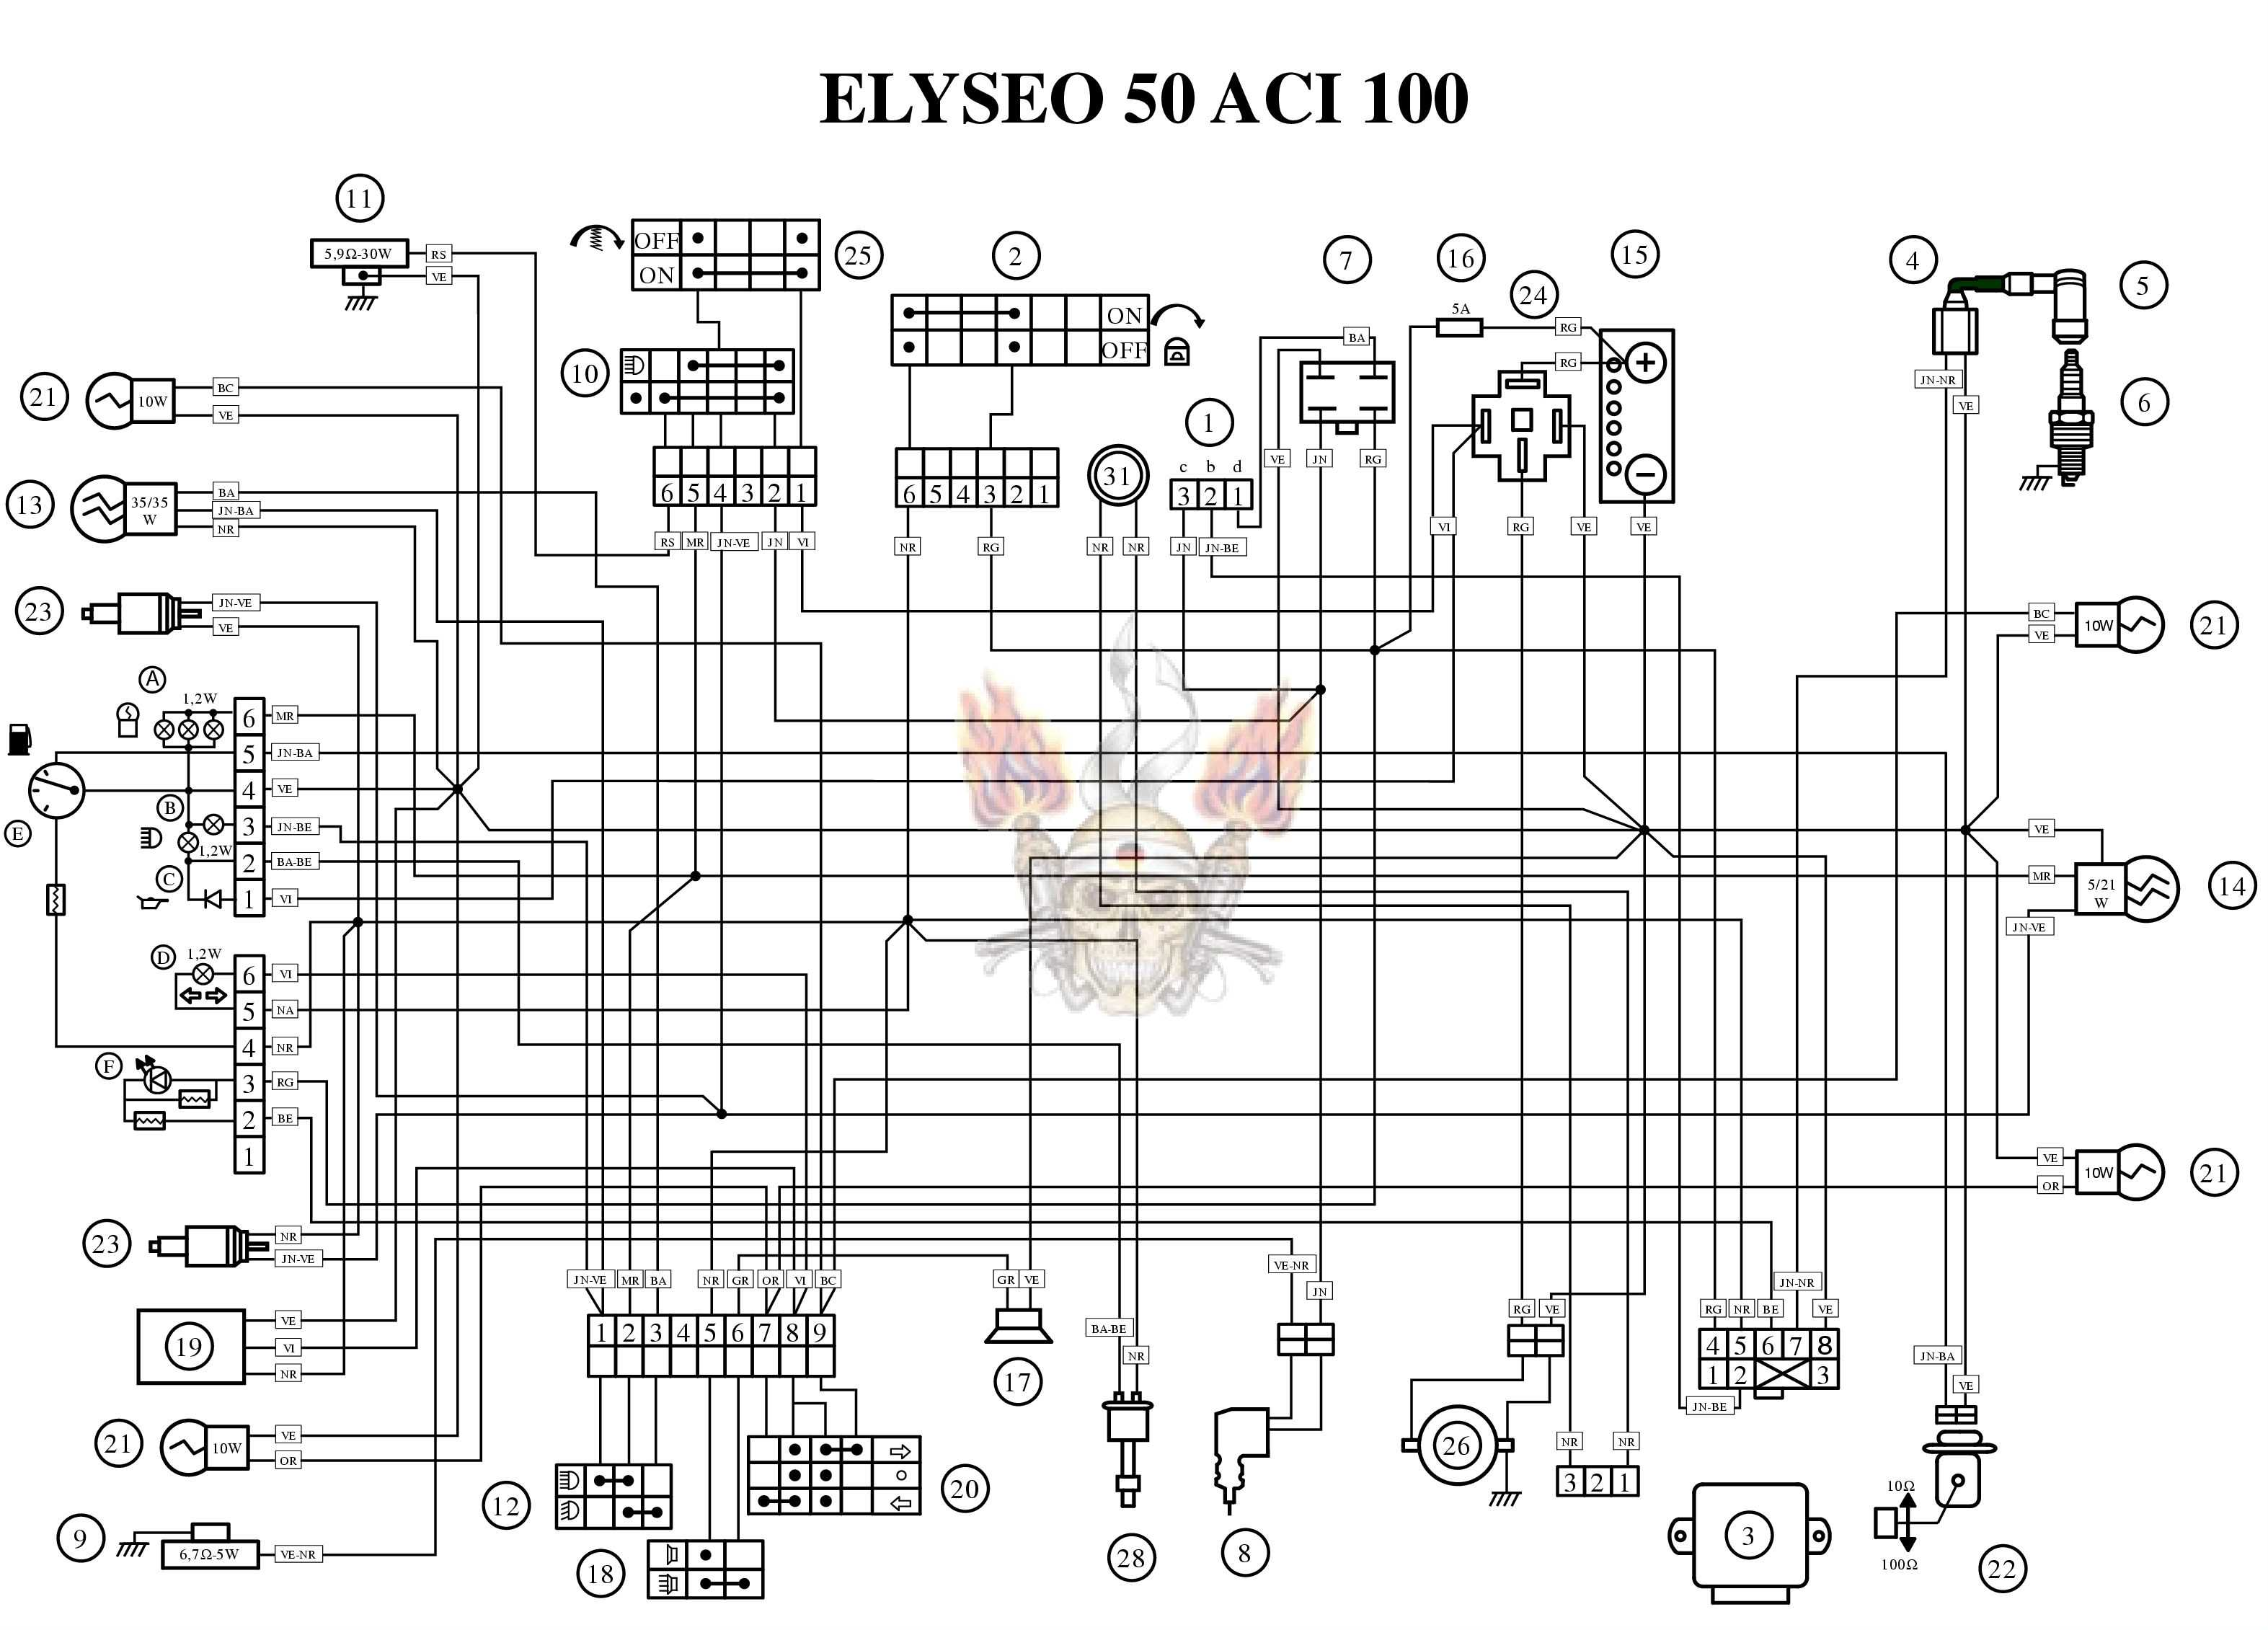 Wiring Diagram Peugeot ELYSEO 50 ACI 100?t\\\\\\=1485078190 peugeot 308 wiring diagram download wiring diagram and schematic honda 50cc wiring diagram at bayanpartner.co